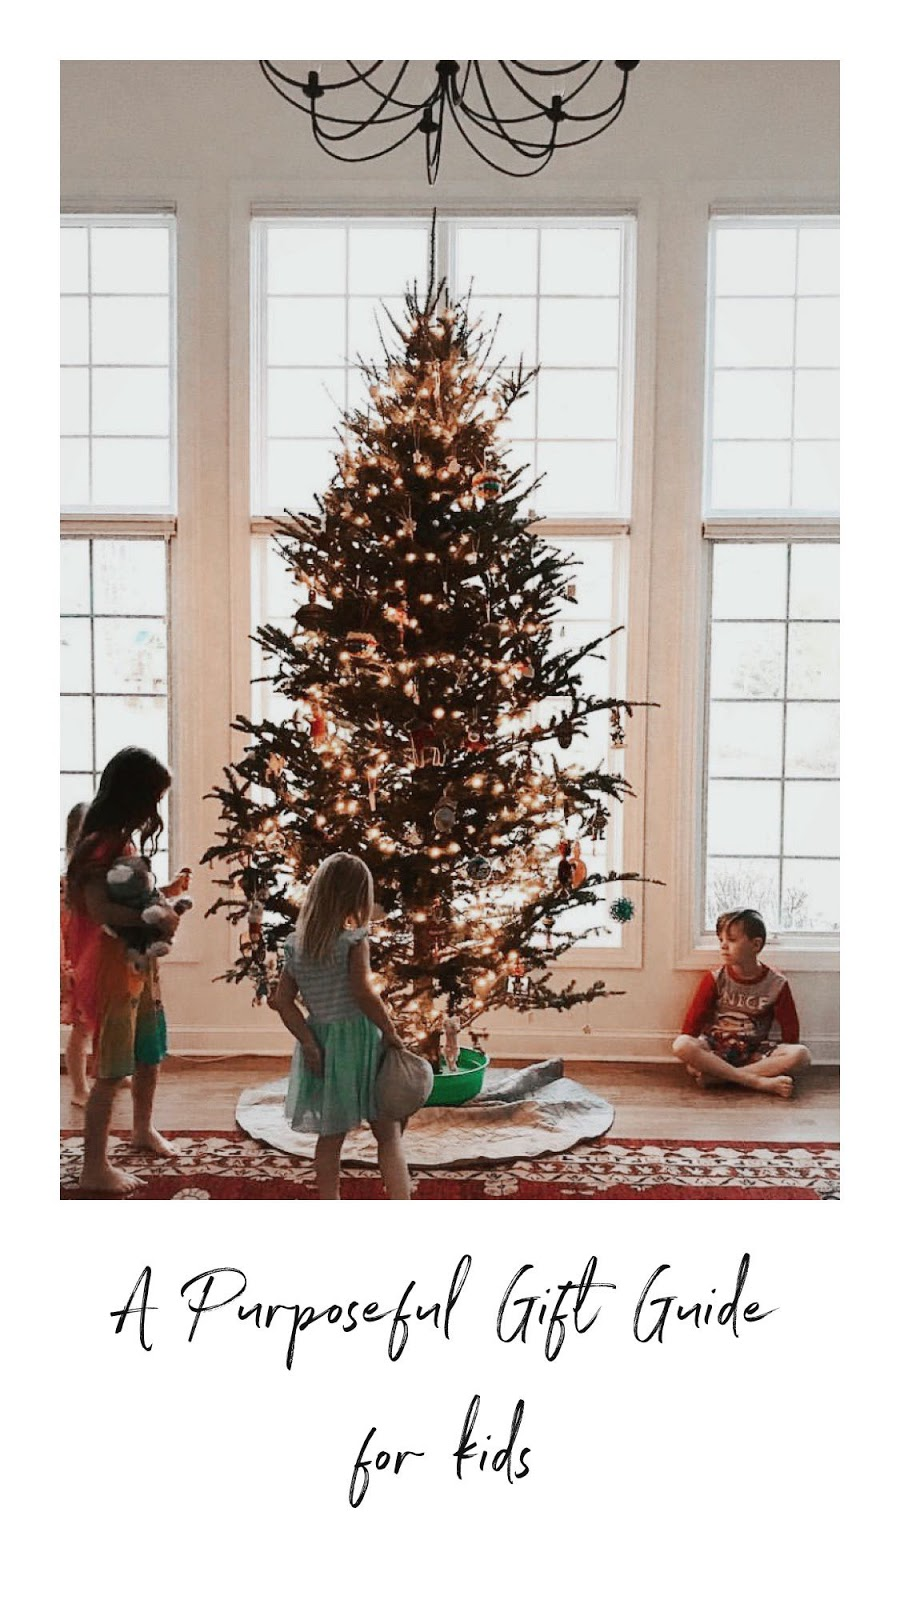 The Quick Journey: Gifting | Christmas Ideas for Kids